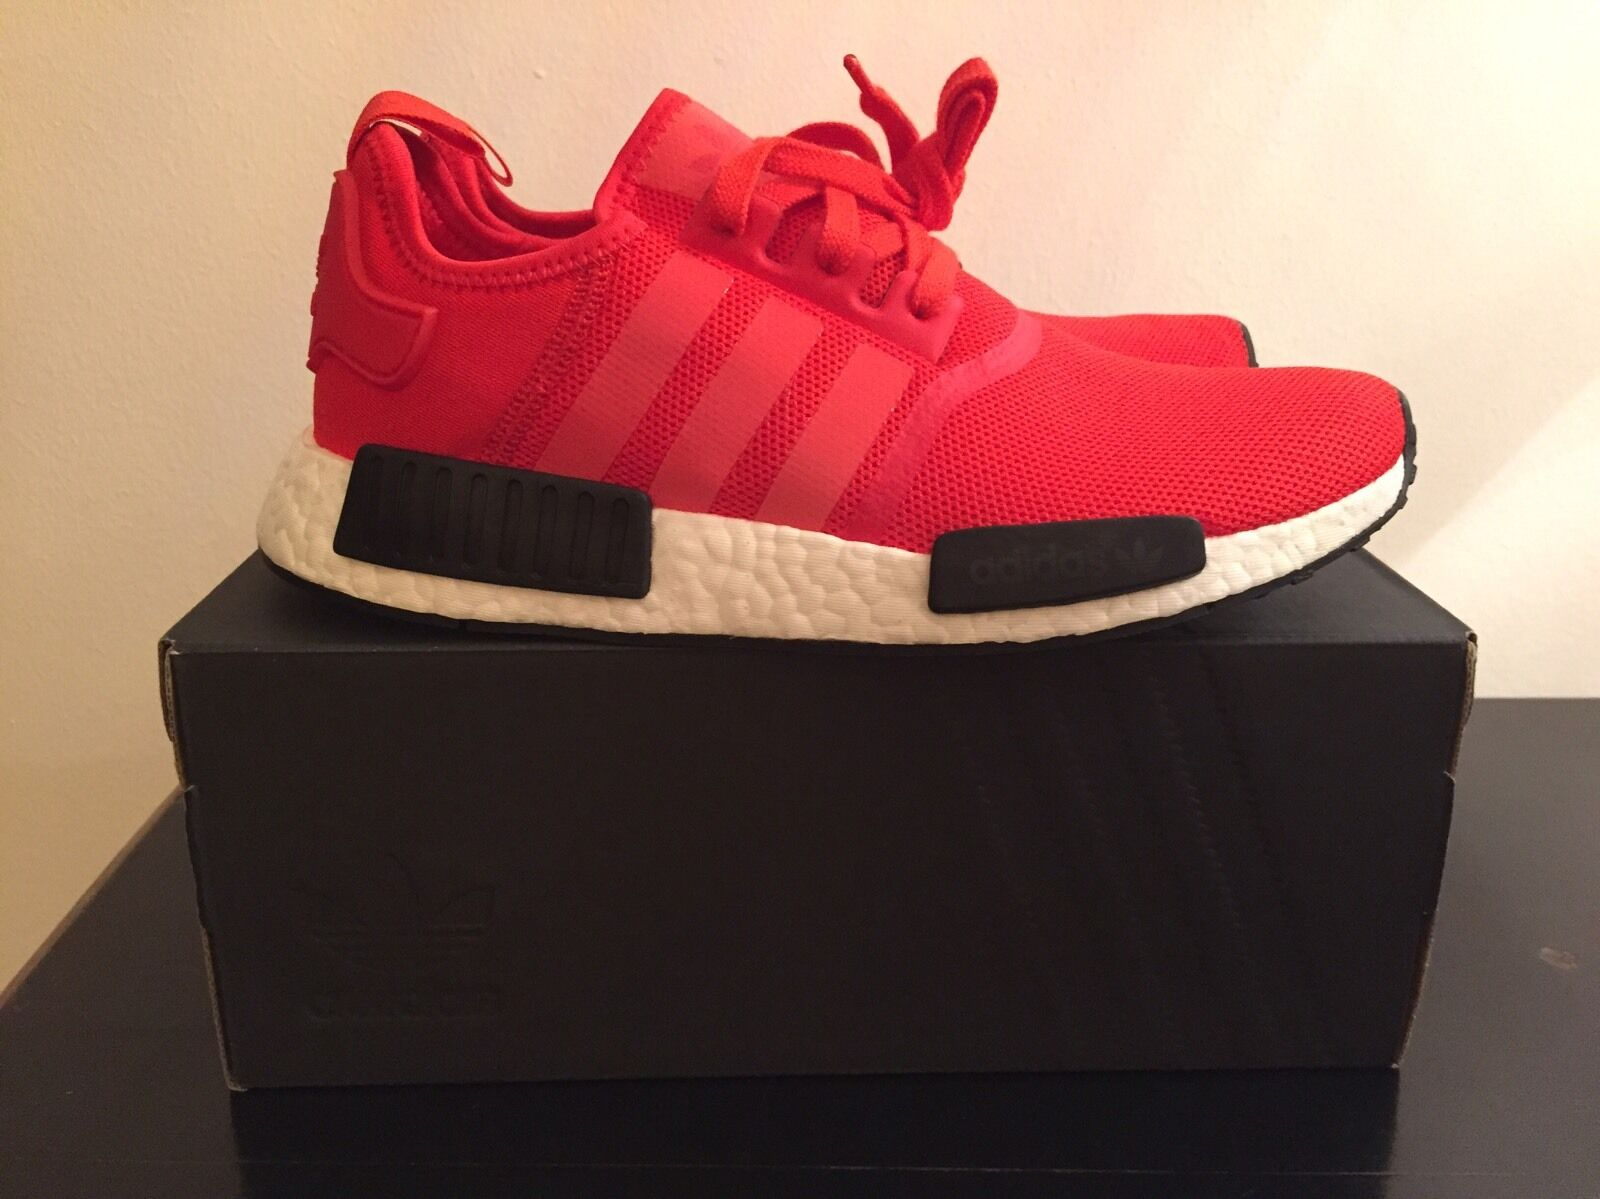 ADIDAS NMD R1 ROT-BLACK in Gre EU 42 2/3 US 9